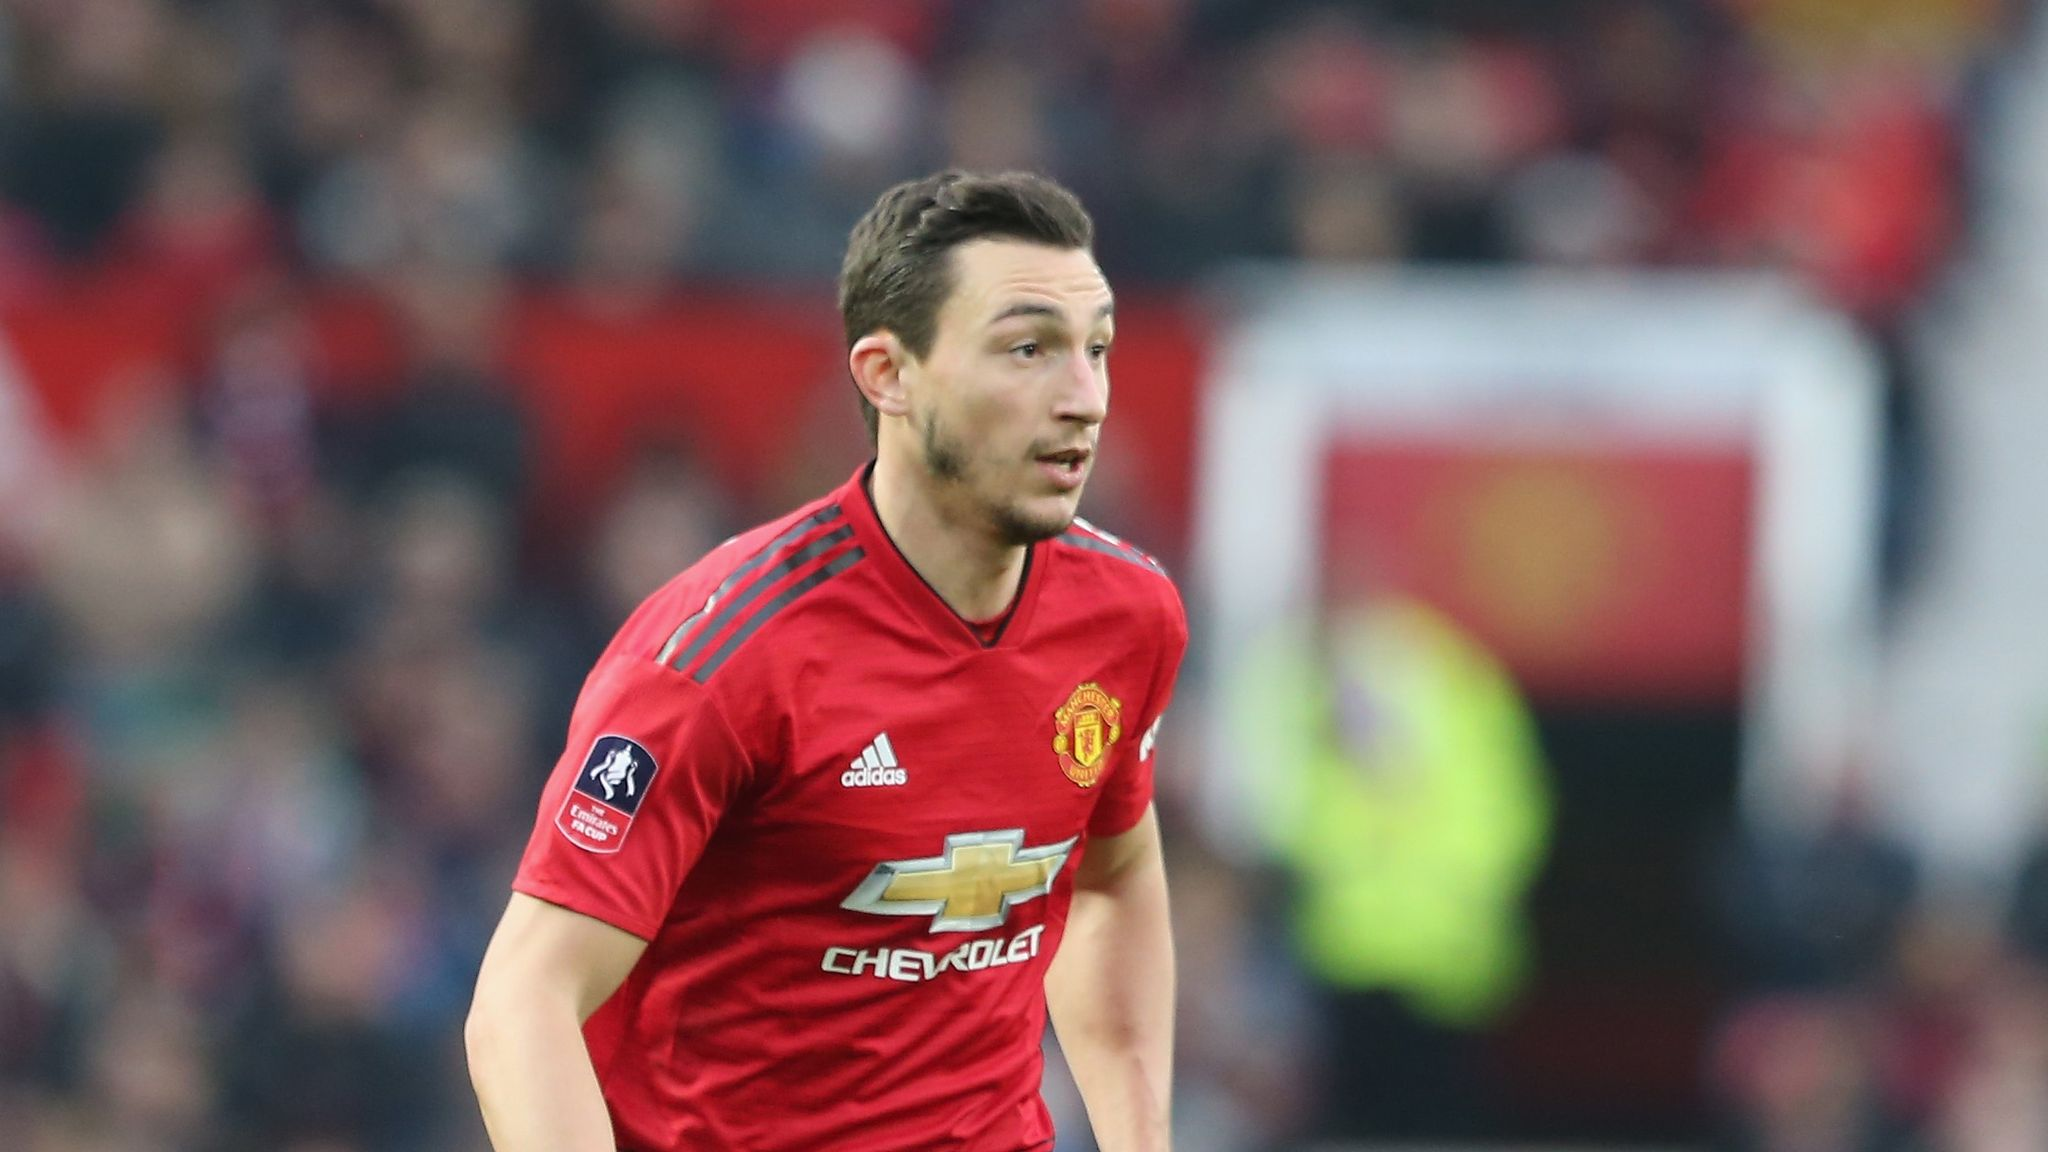 Matteo Darmian: Parma agree deal with Manchester United for defender |  Football News | Sky Sports